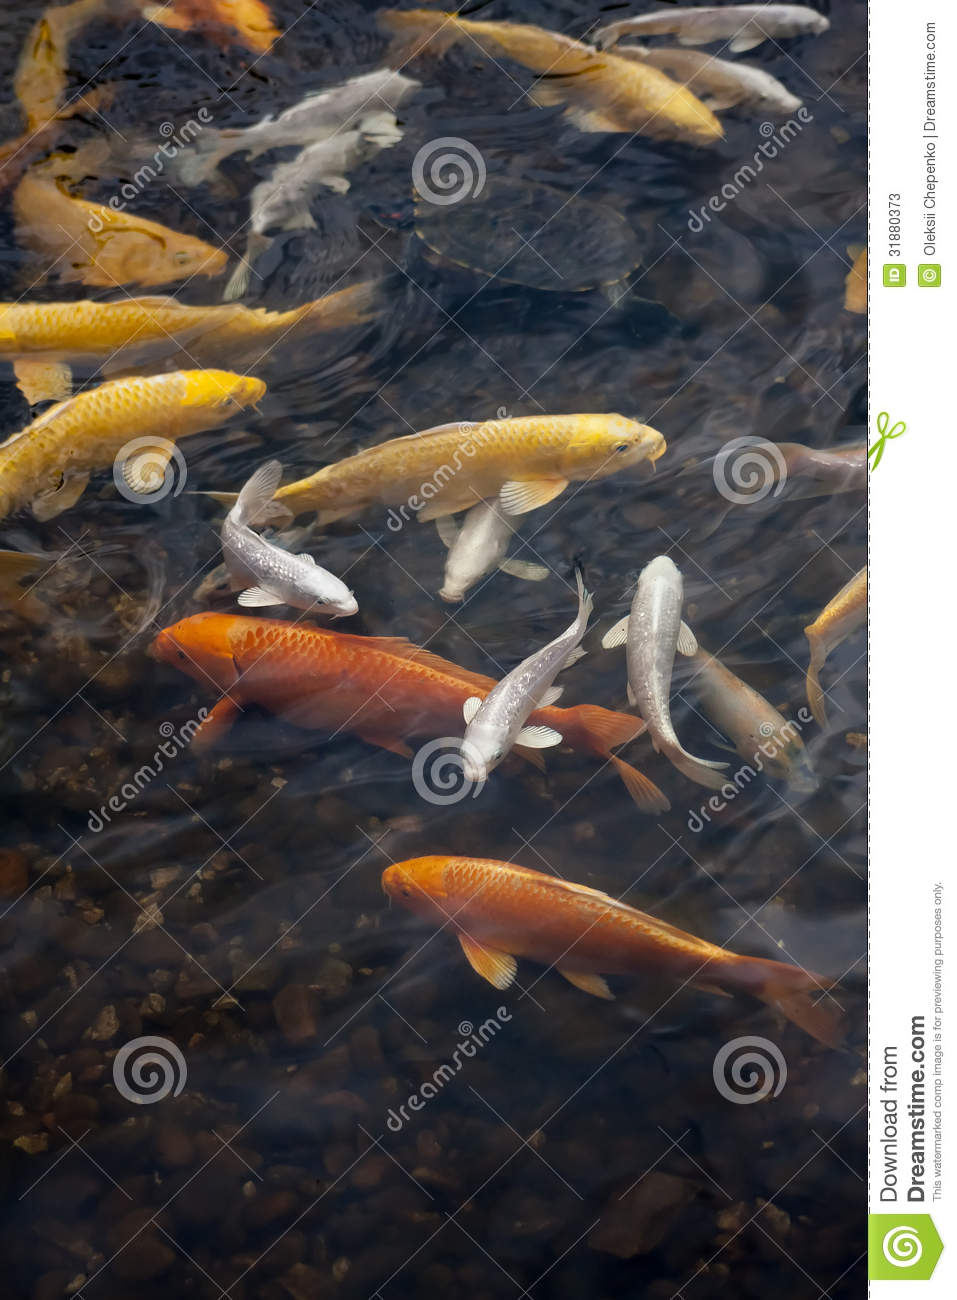 Koi fish stock photos image 31880373 for Red and white koi fish